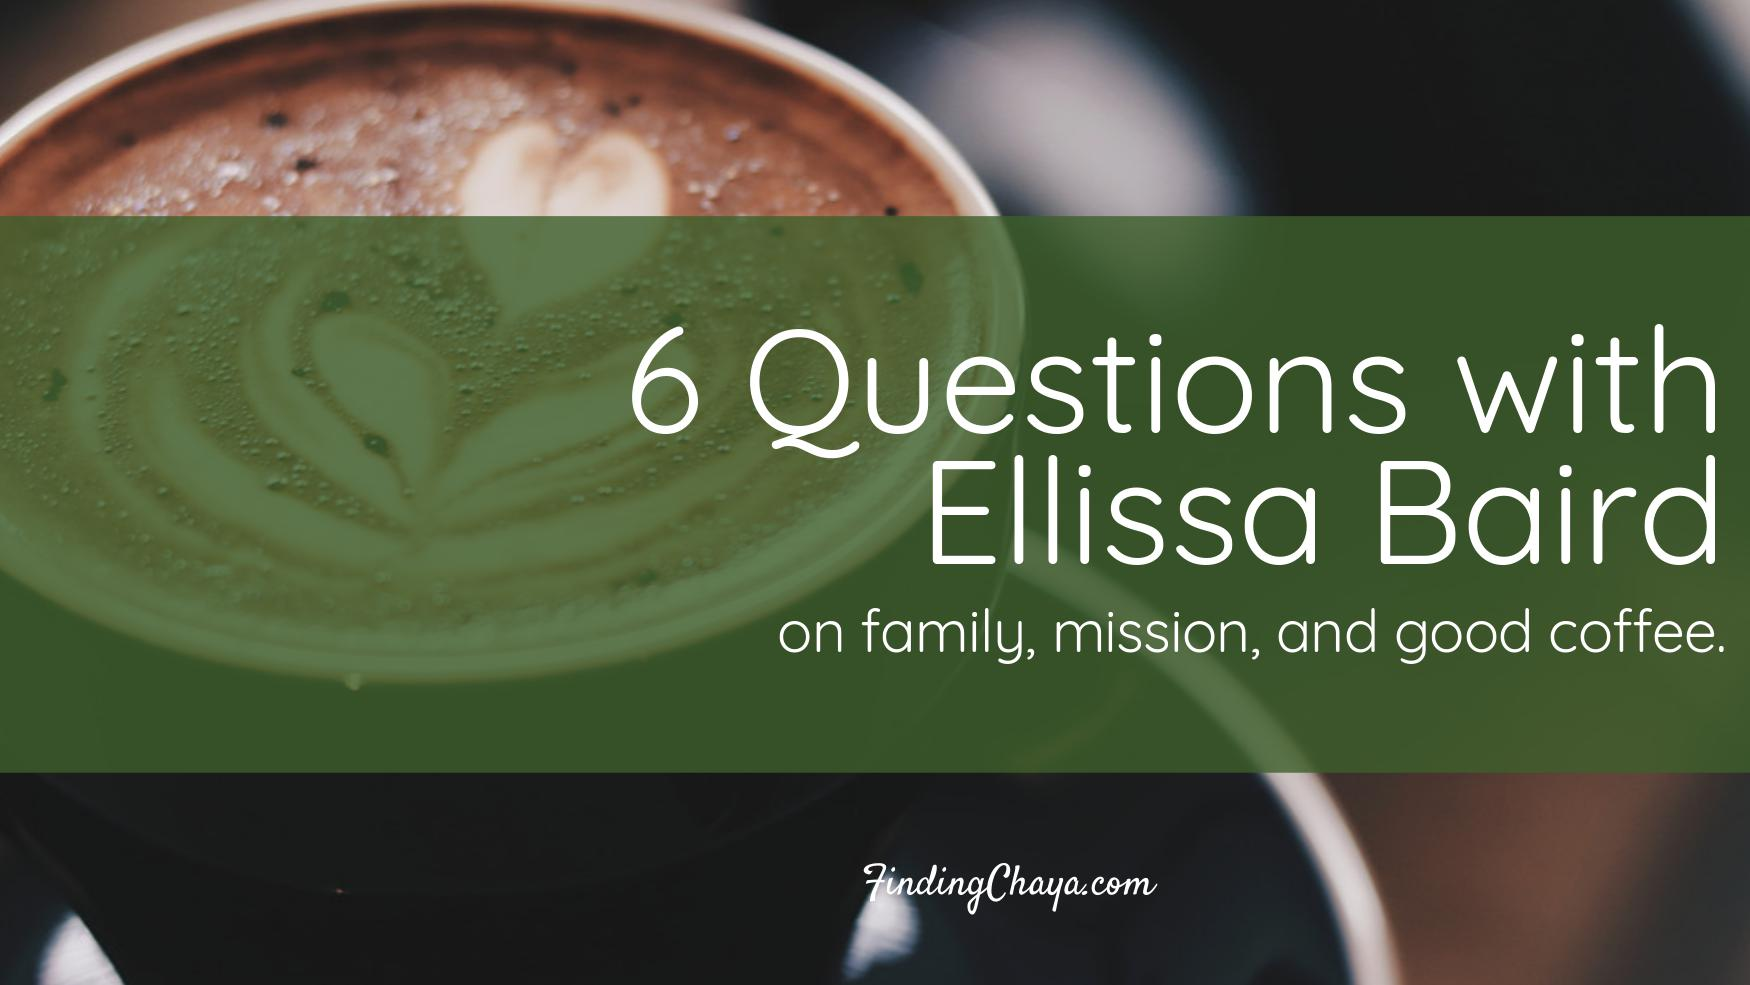 6 Questions with Ellissa Baird